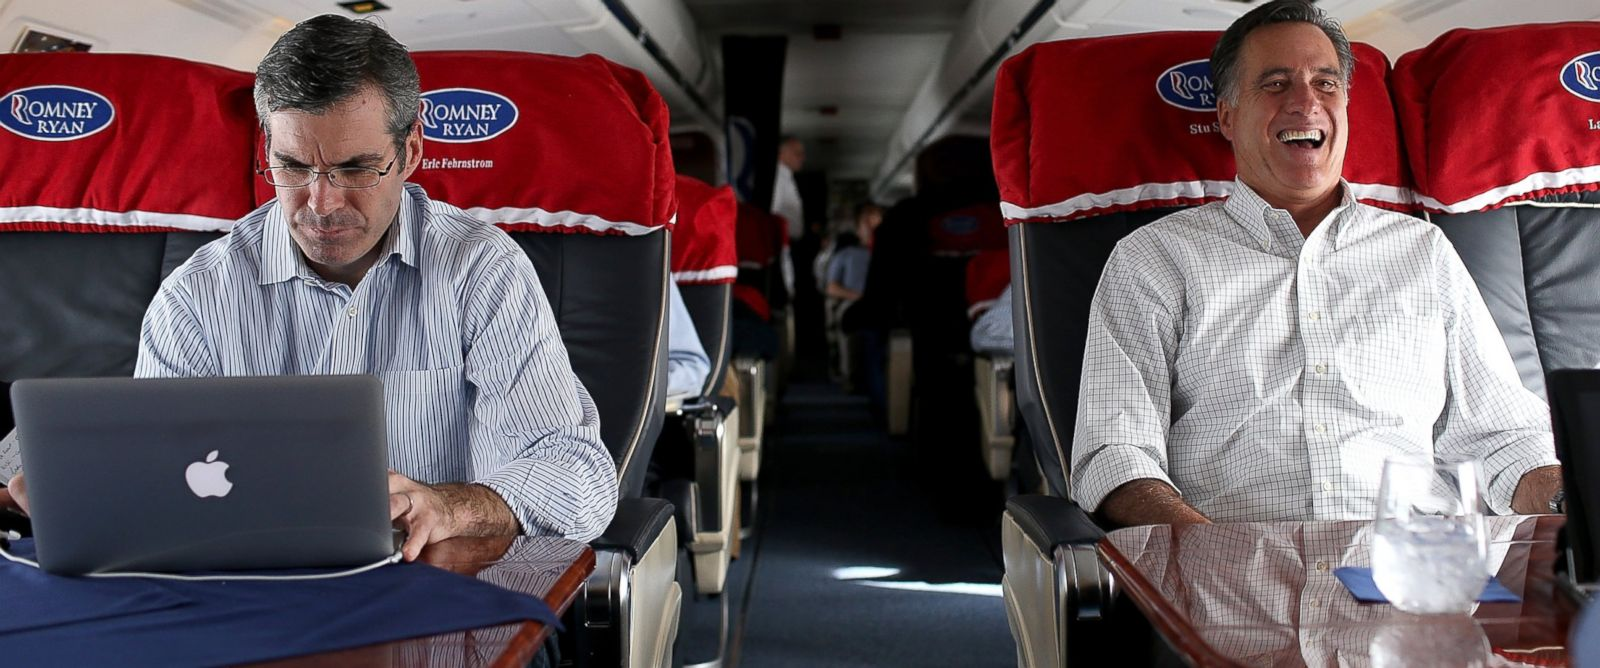 PHOTO: Then Republican presidential candidate Mitt Romney, right, laughs as his senior adviser and spokesman, Kevin Madden, works on his laptop on his campaign plane, Oct. 29, 2012, en route to Moline, Ill.